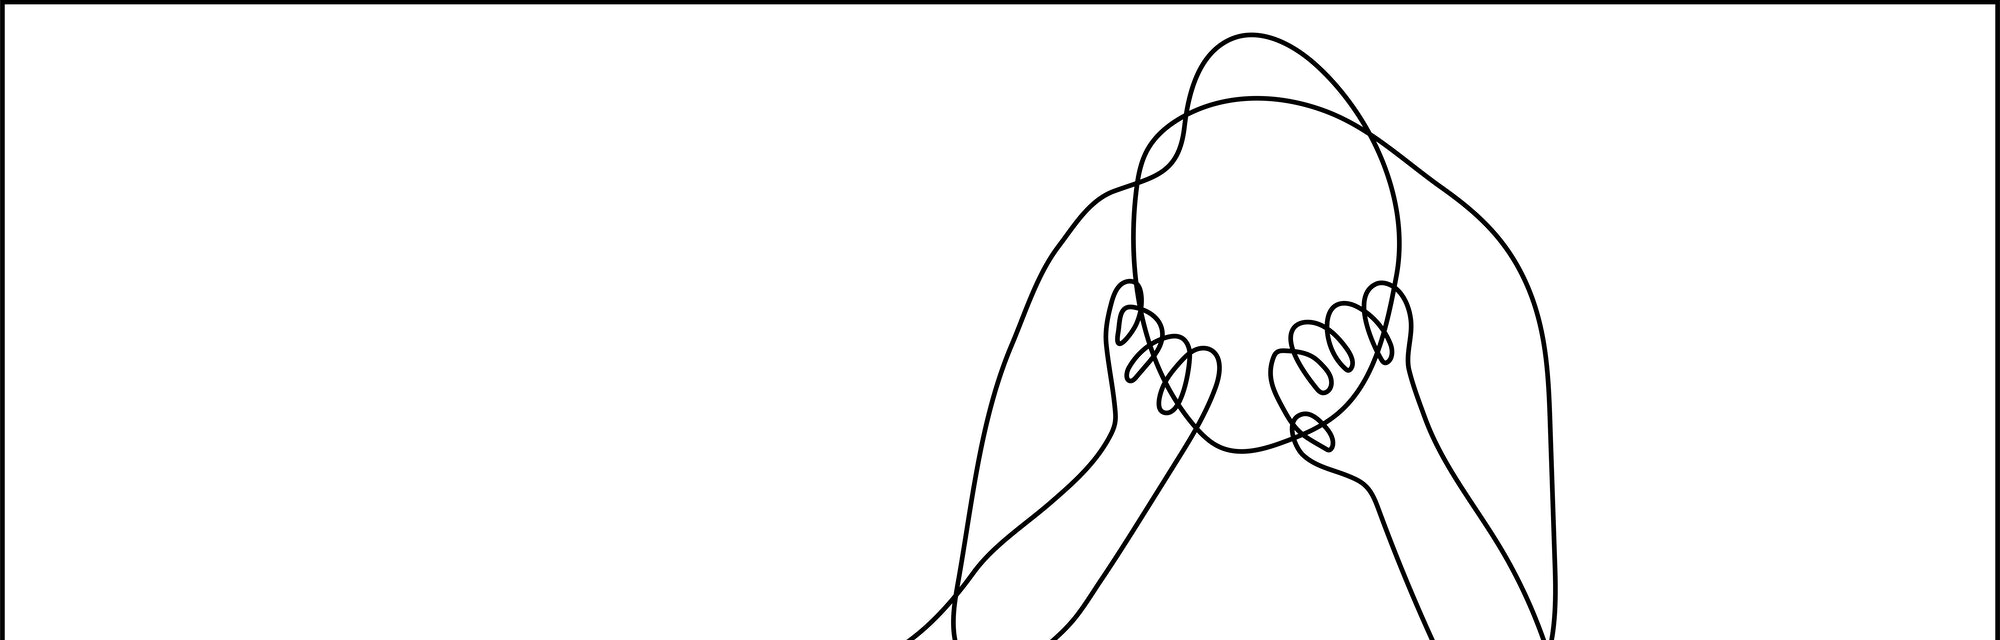 Continuous line drawing of very sad man sitting alone with headache touching forehead on white background.